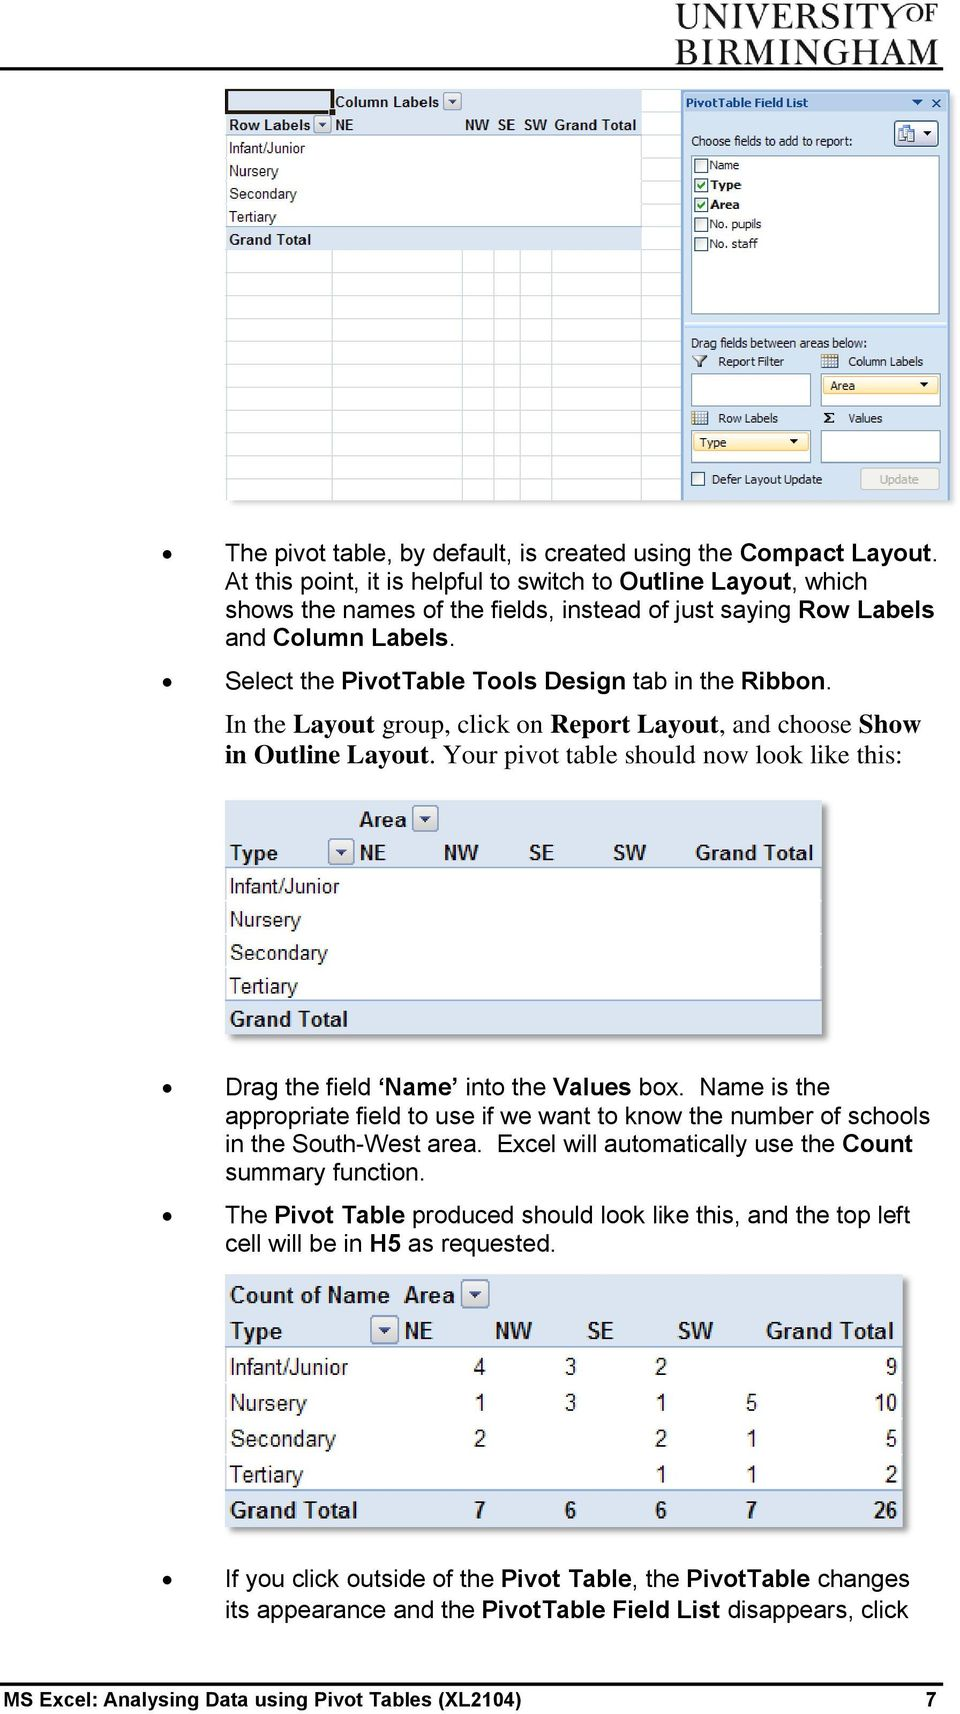 Select the PivotTable Tools Design tab in the Ribbon. In the Layout group, click on Report Layout, and choose Show in Outline Layout.